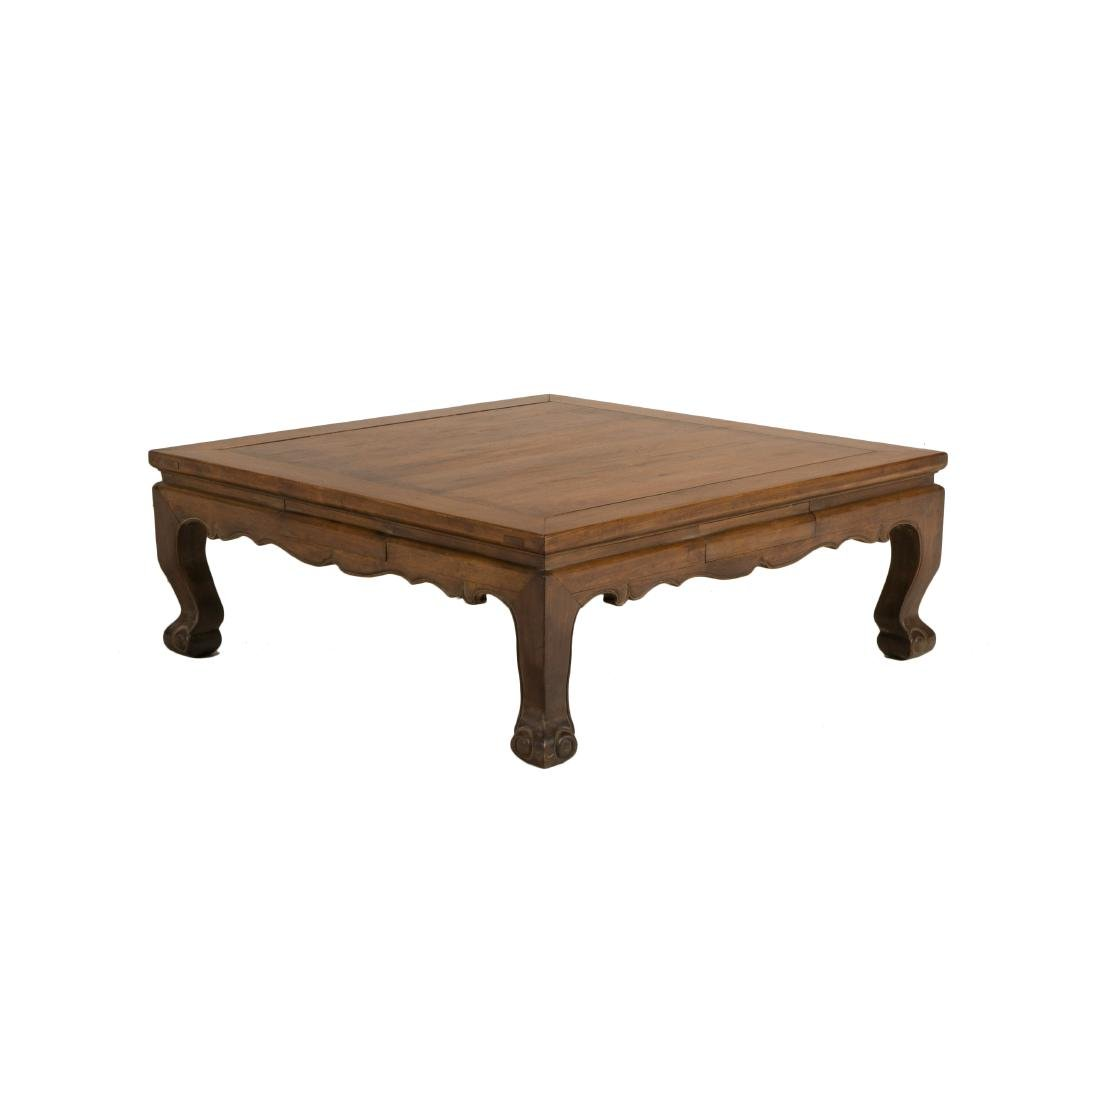 A HUANGHUALI LOW-WAISTED GAME TABLE